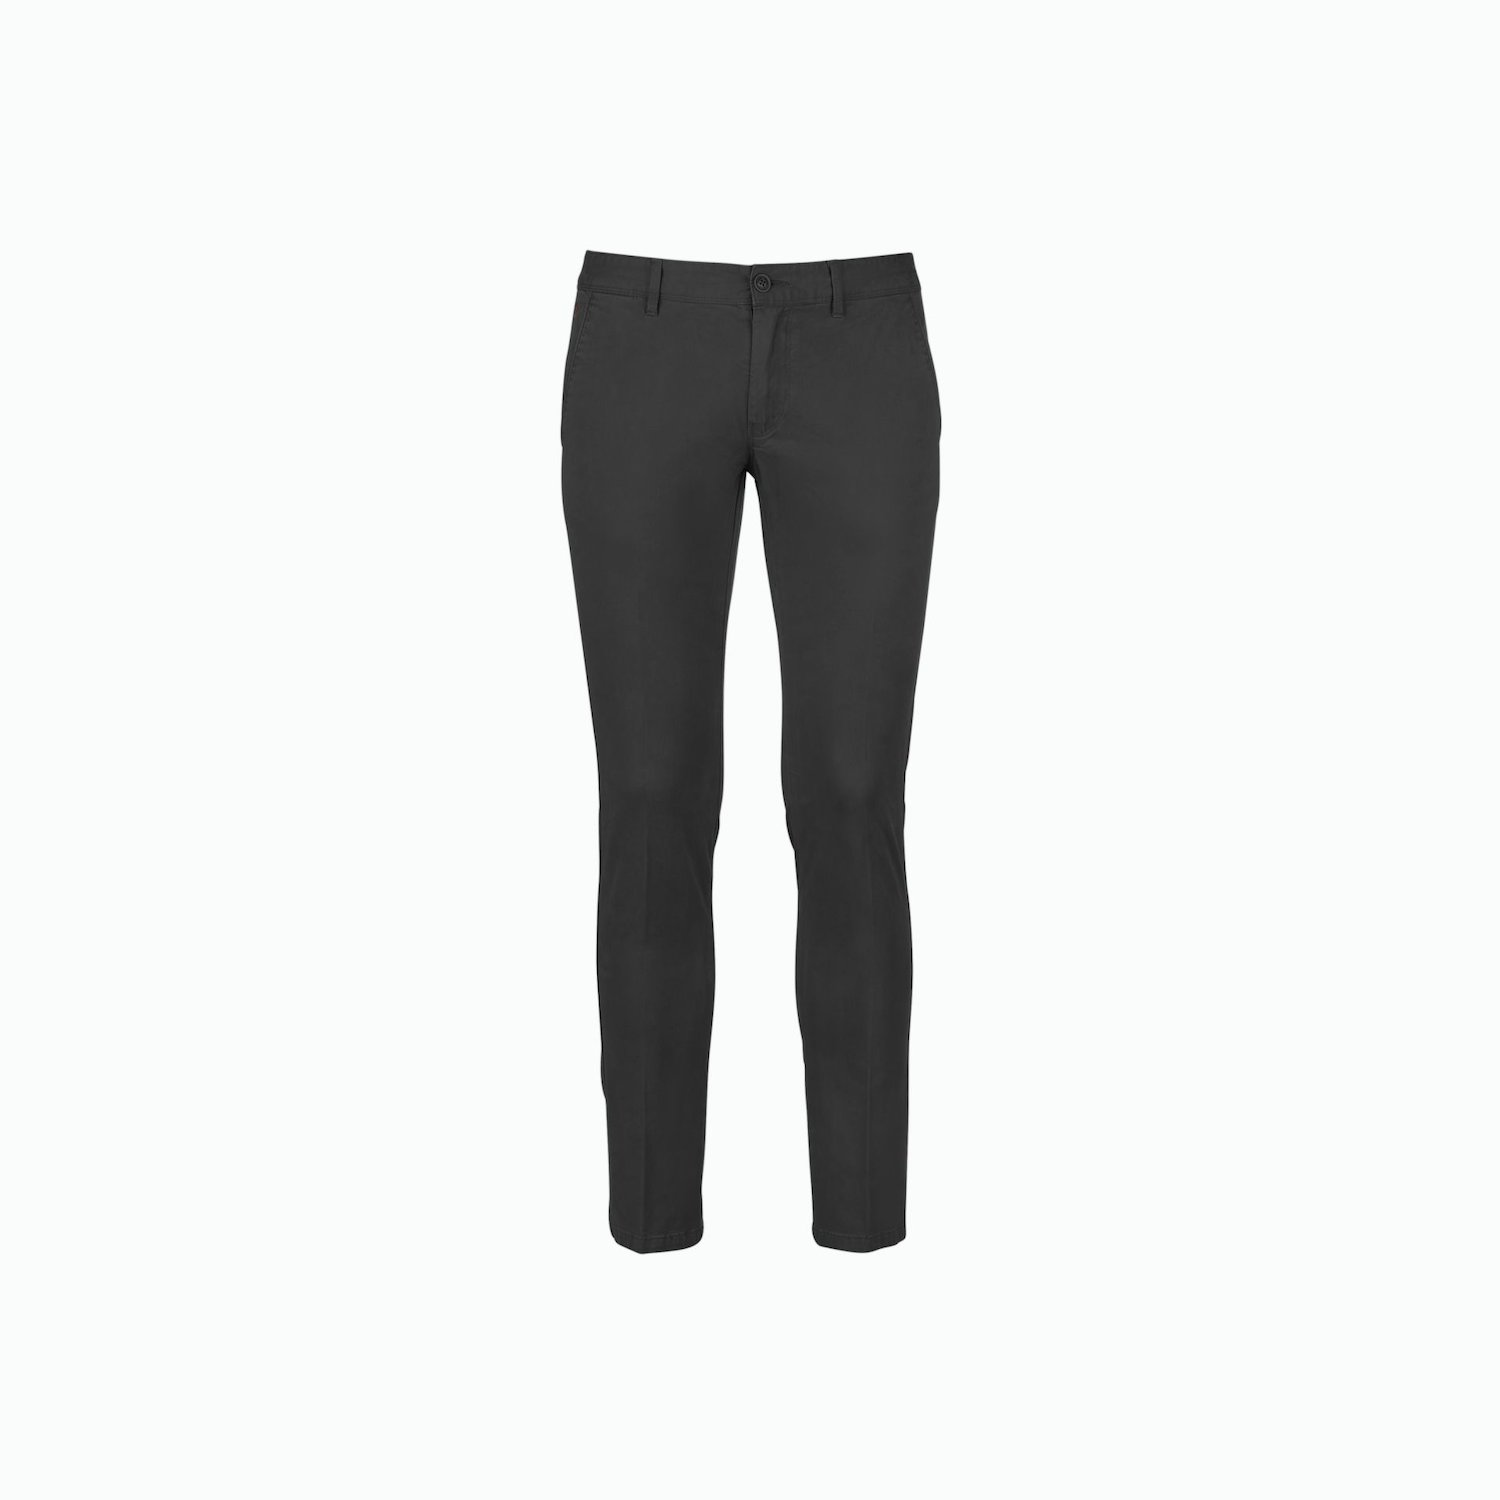 B3 Trousers - Anthracite